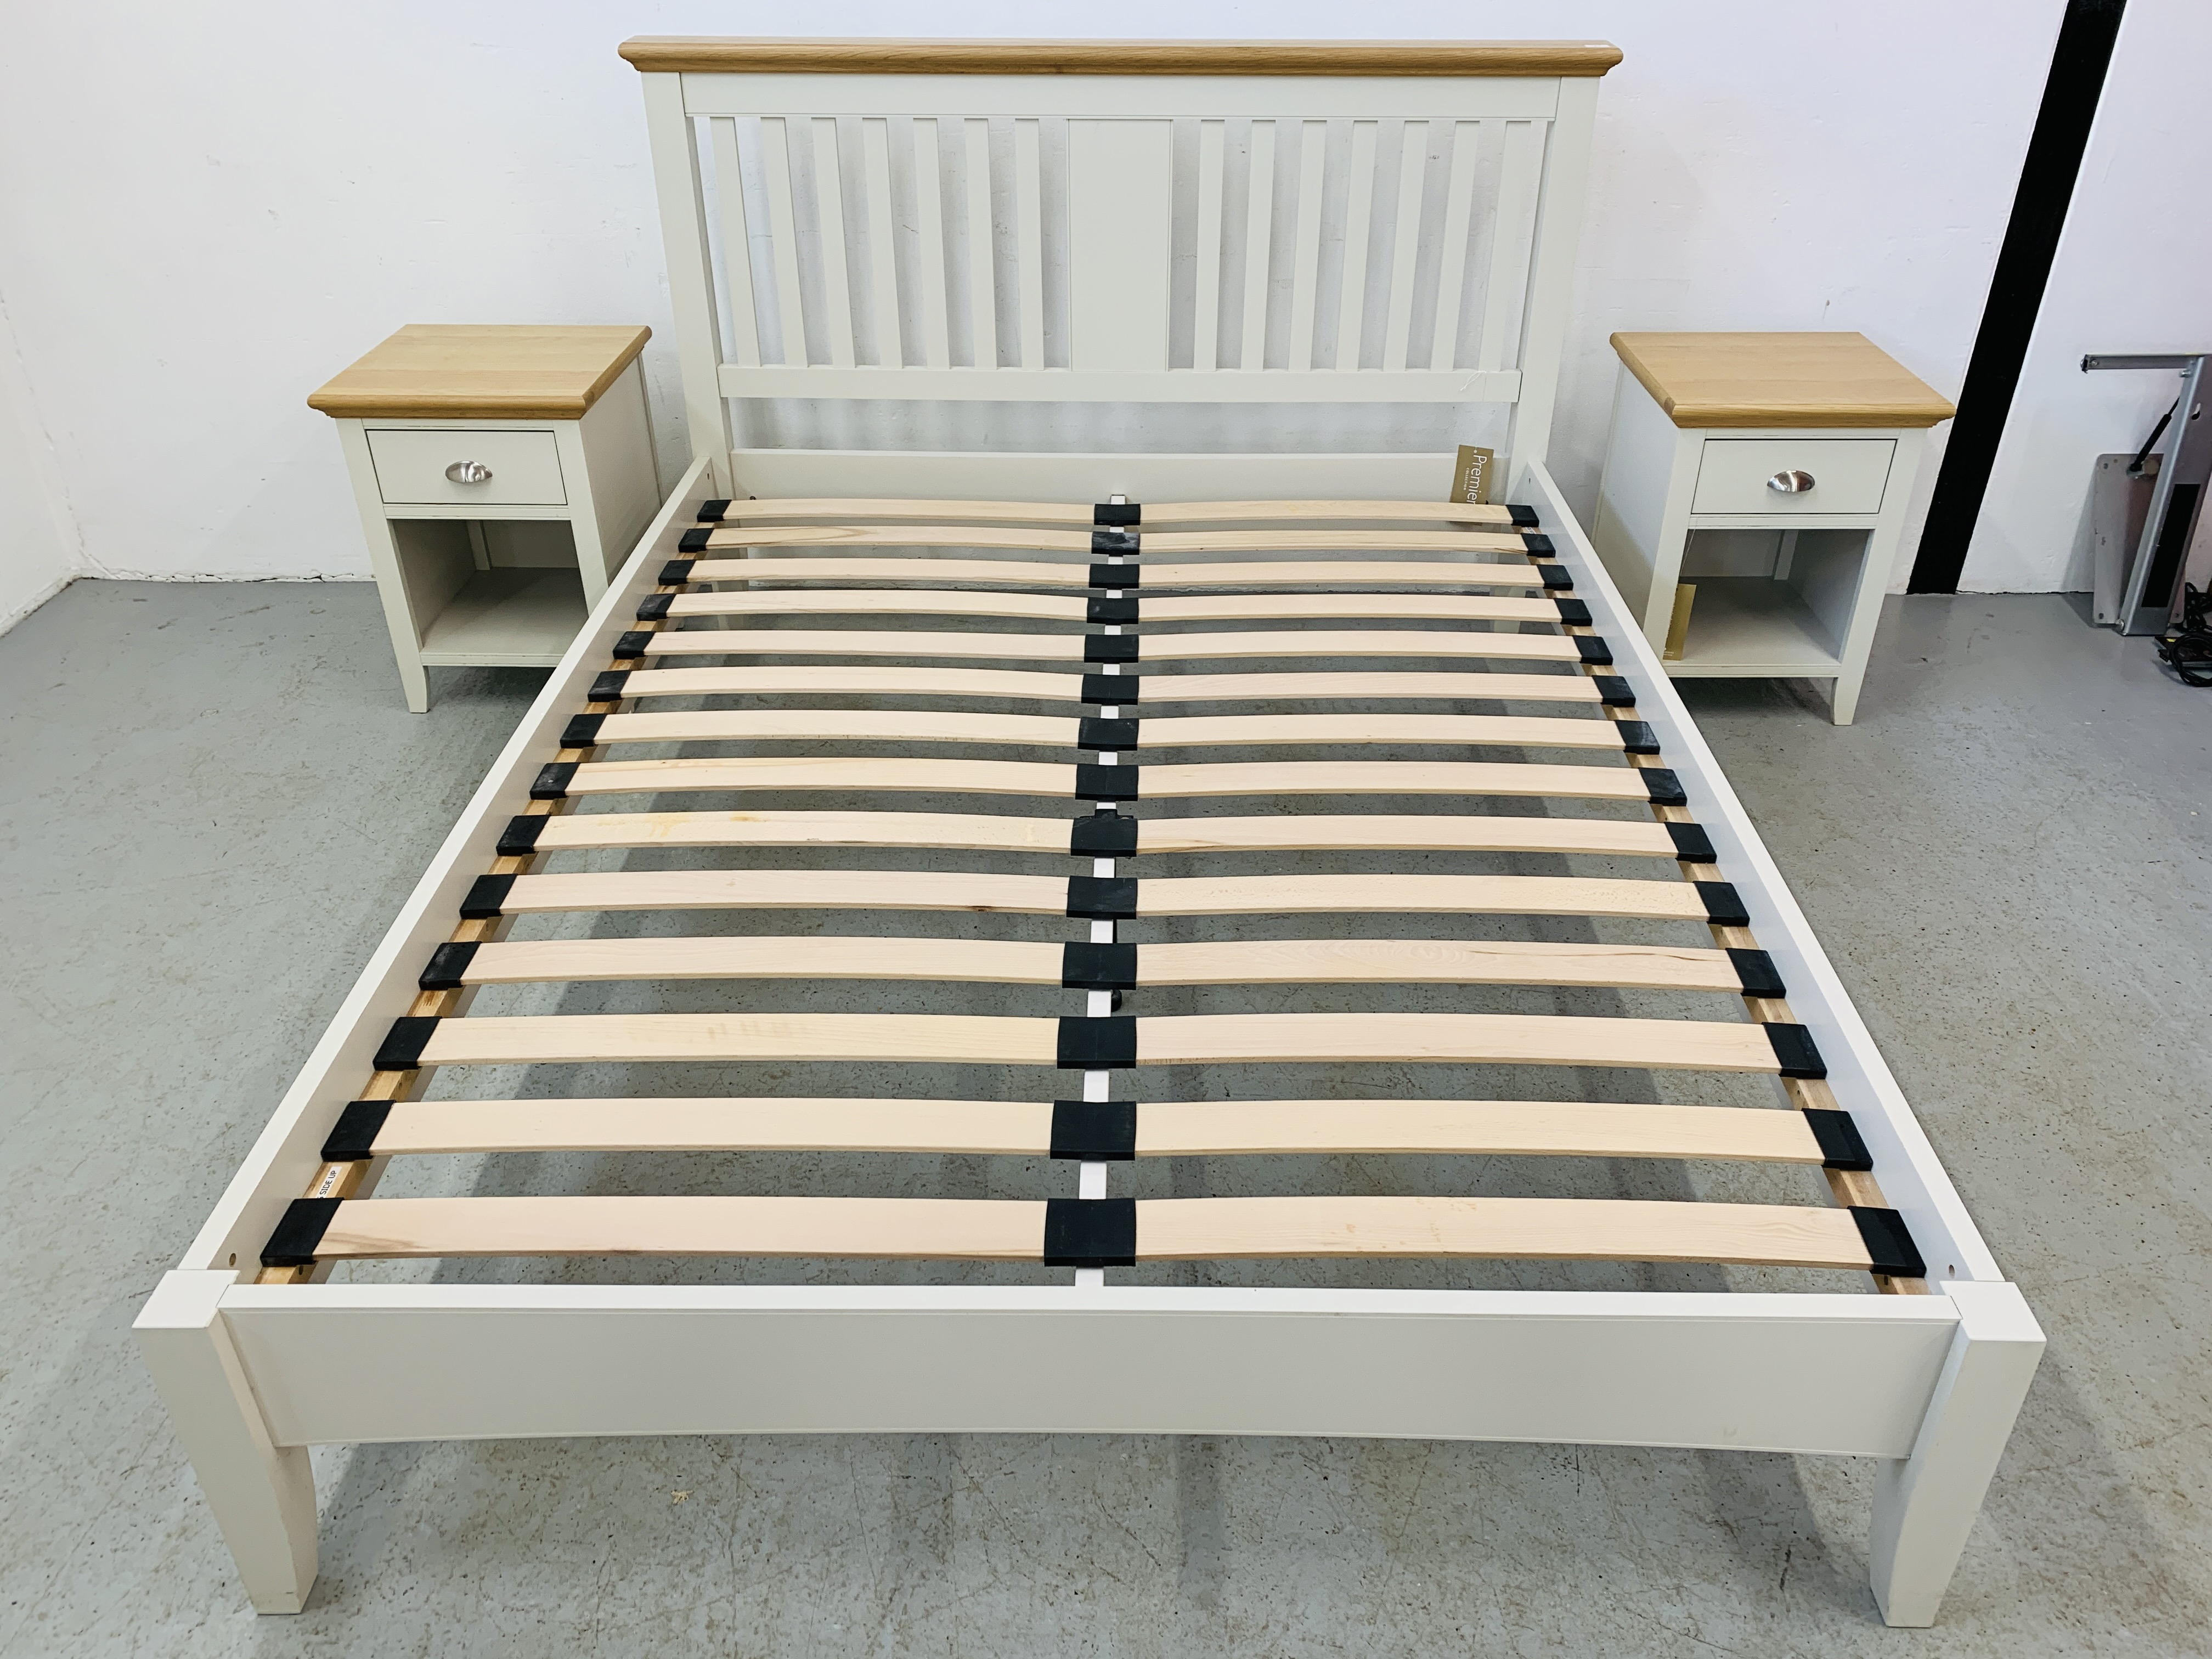 A PREMIER COLLECTION DESIGNER KING SIZE BEDSTEAD WITH MATCHING PAIR OF SINGLE DRAWER BEDSIDE STANDS - Image 3 of 15